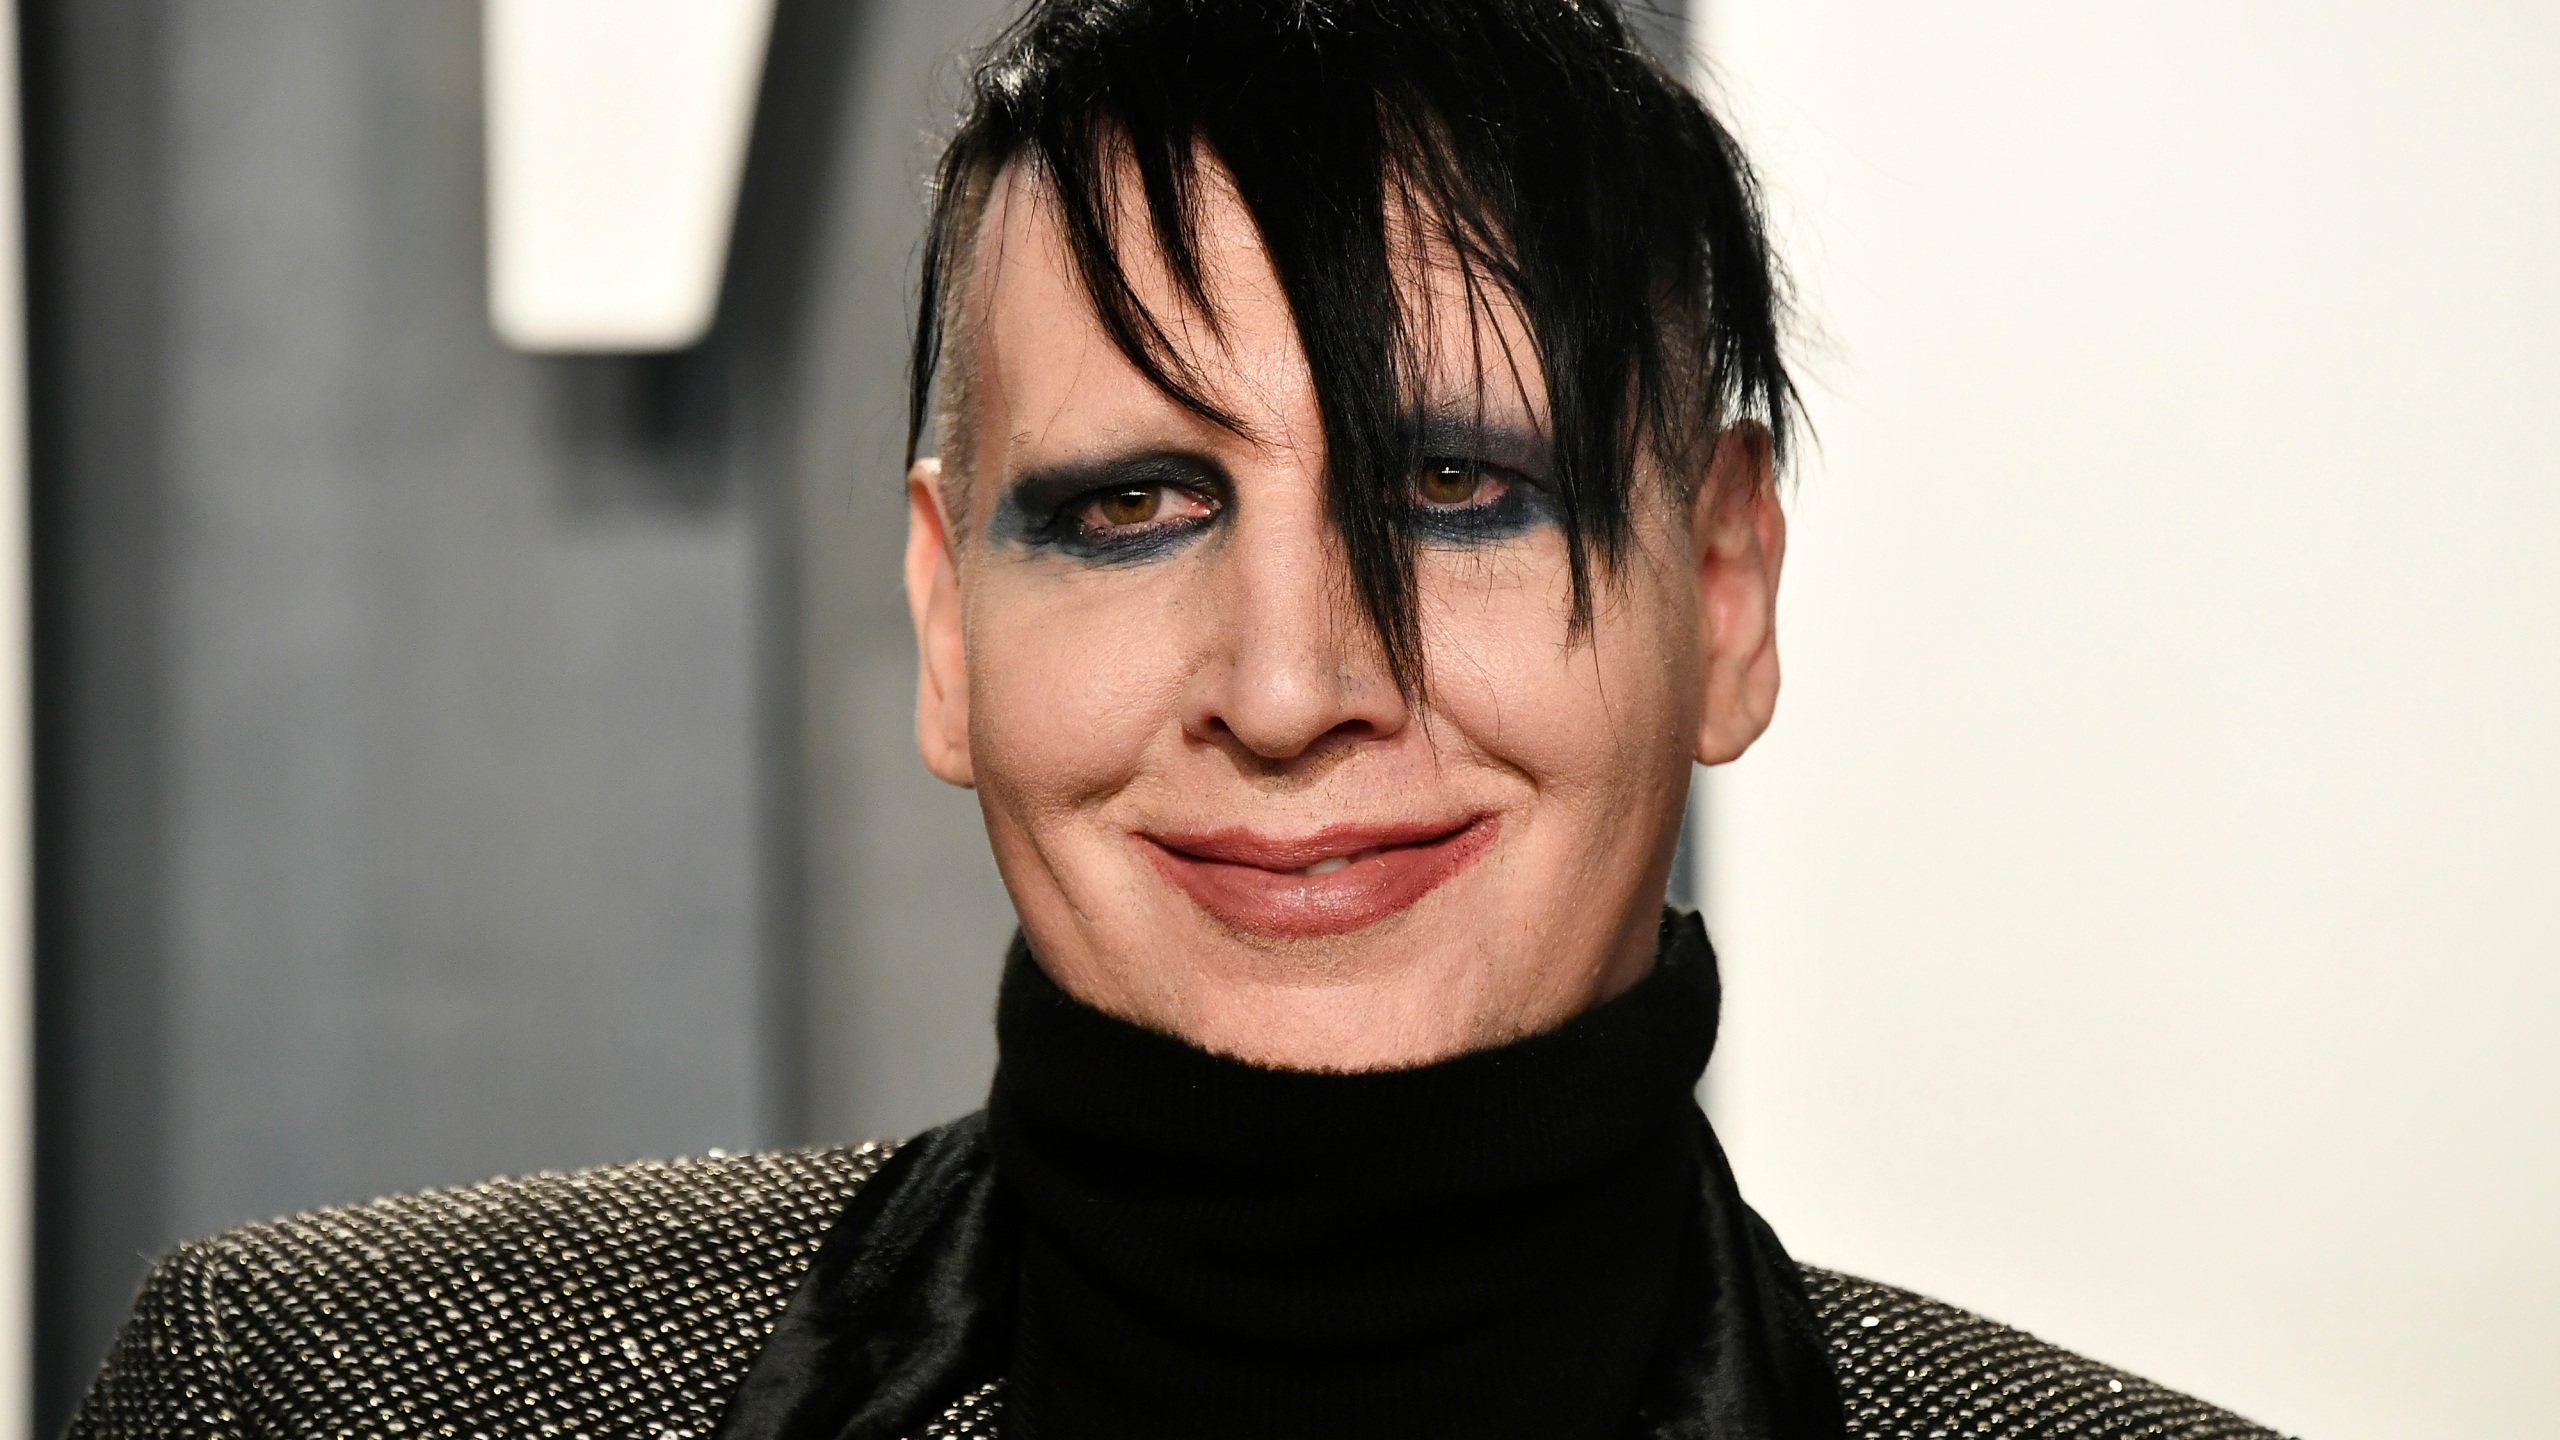 Marilyn Manson attends the 2020 Vanity Fair Oscar Party on Feb. 9, 2020, in Beverly Hills, California. (Frazer Harrison/Getty Images)